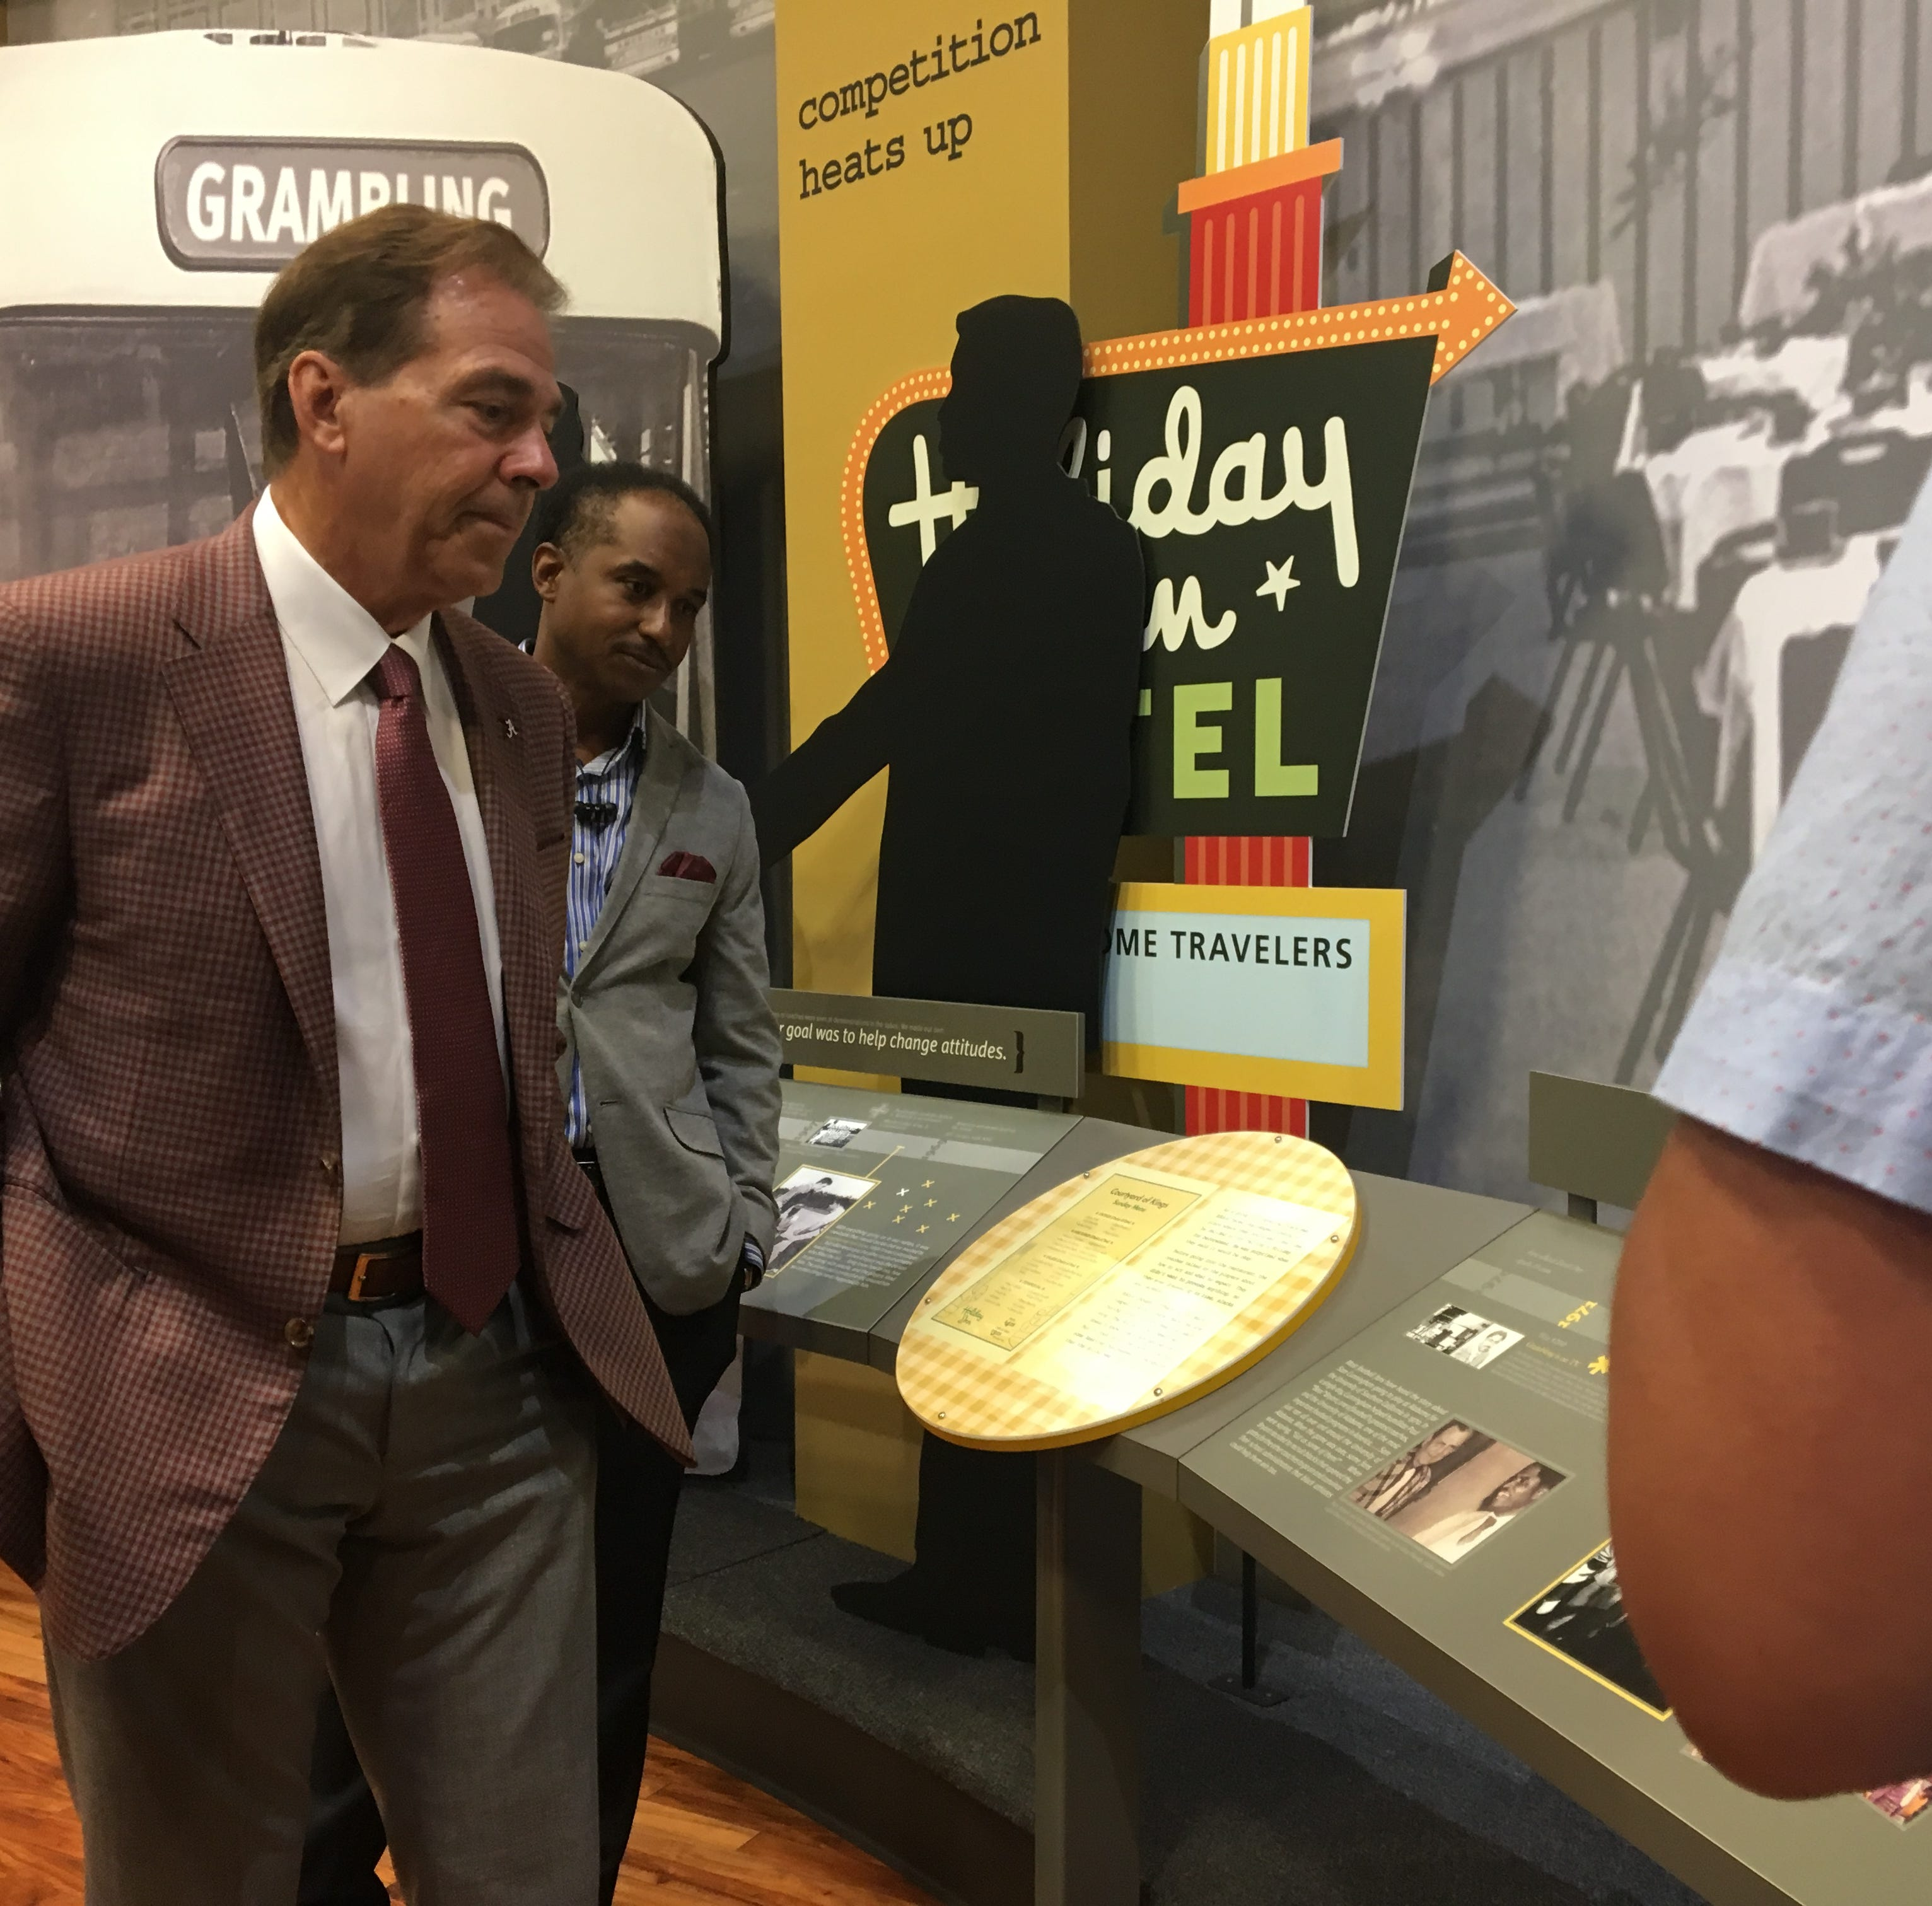 Alabama's Nick Saban helps GSU celebrate Eddie Robinson's 100th birthday